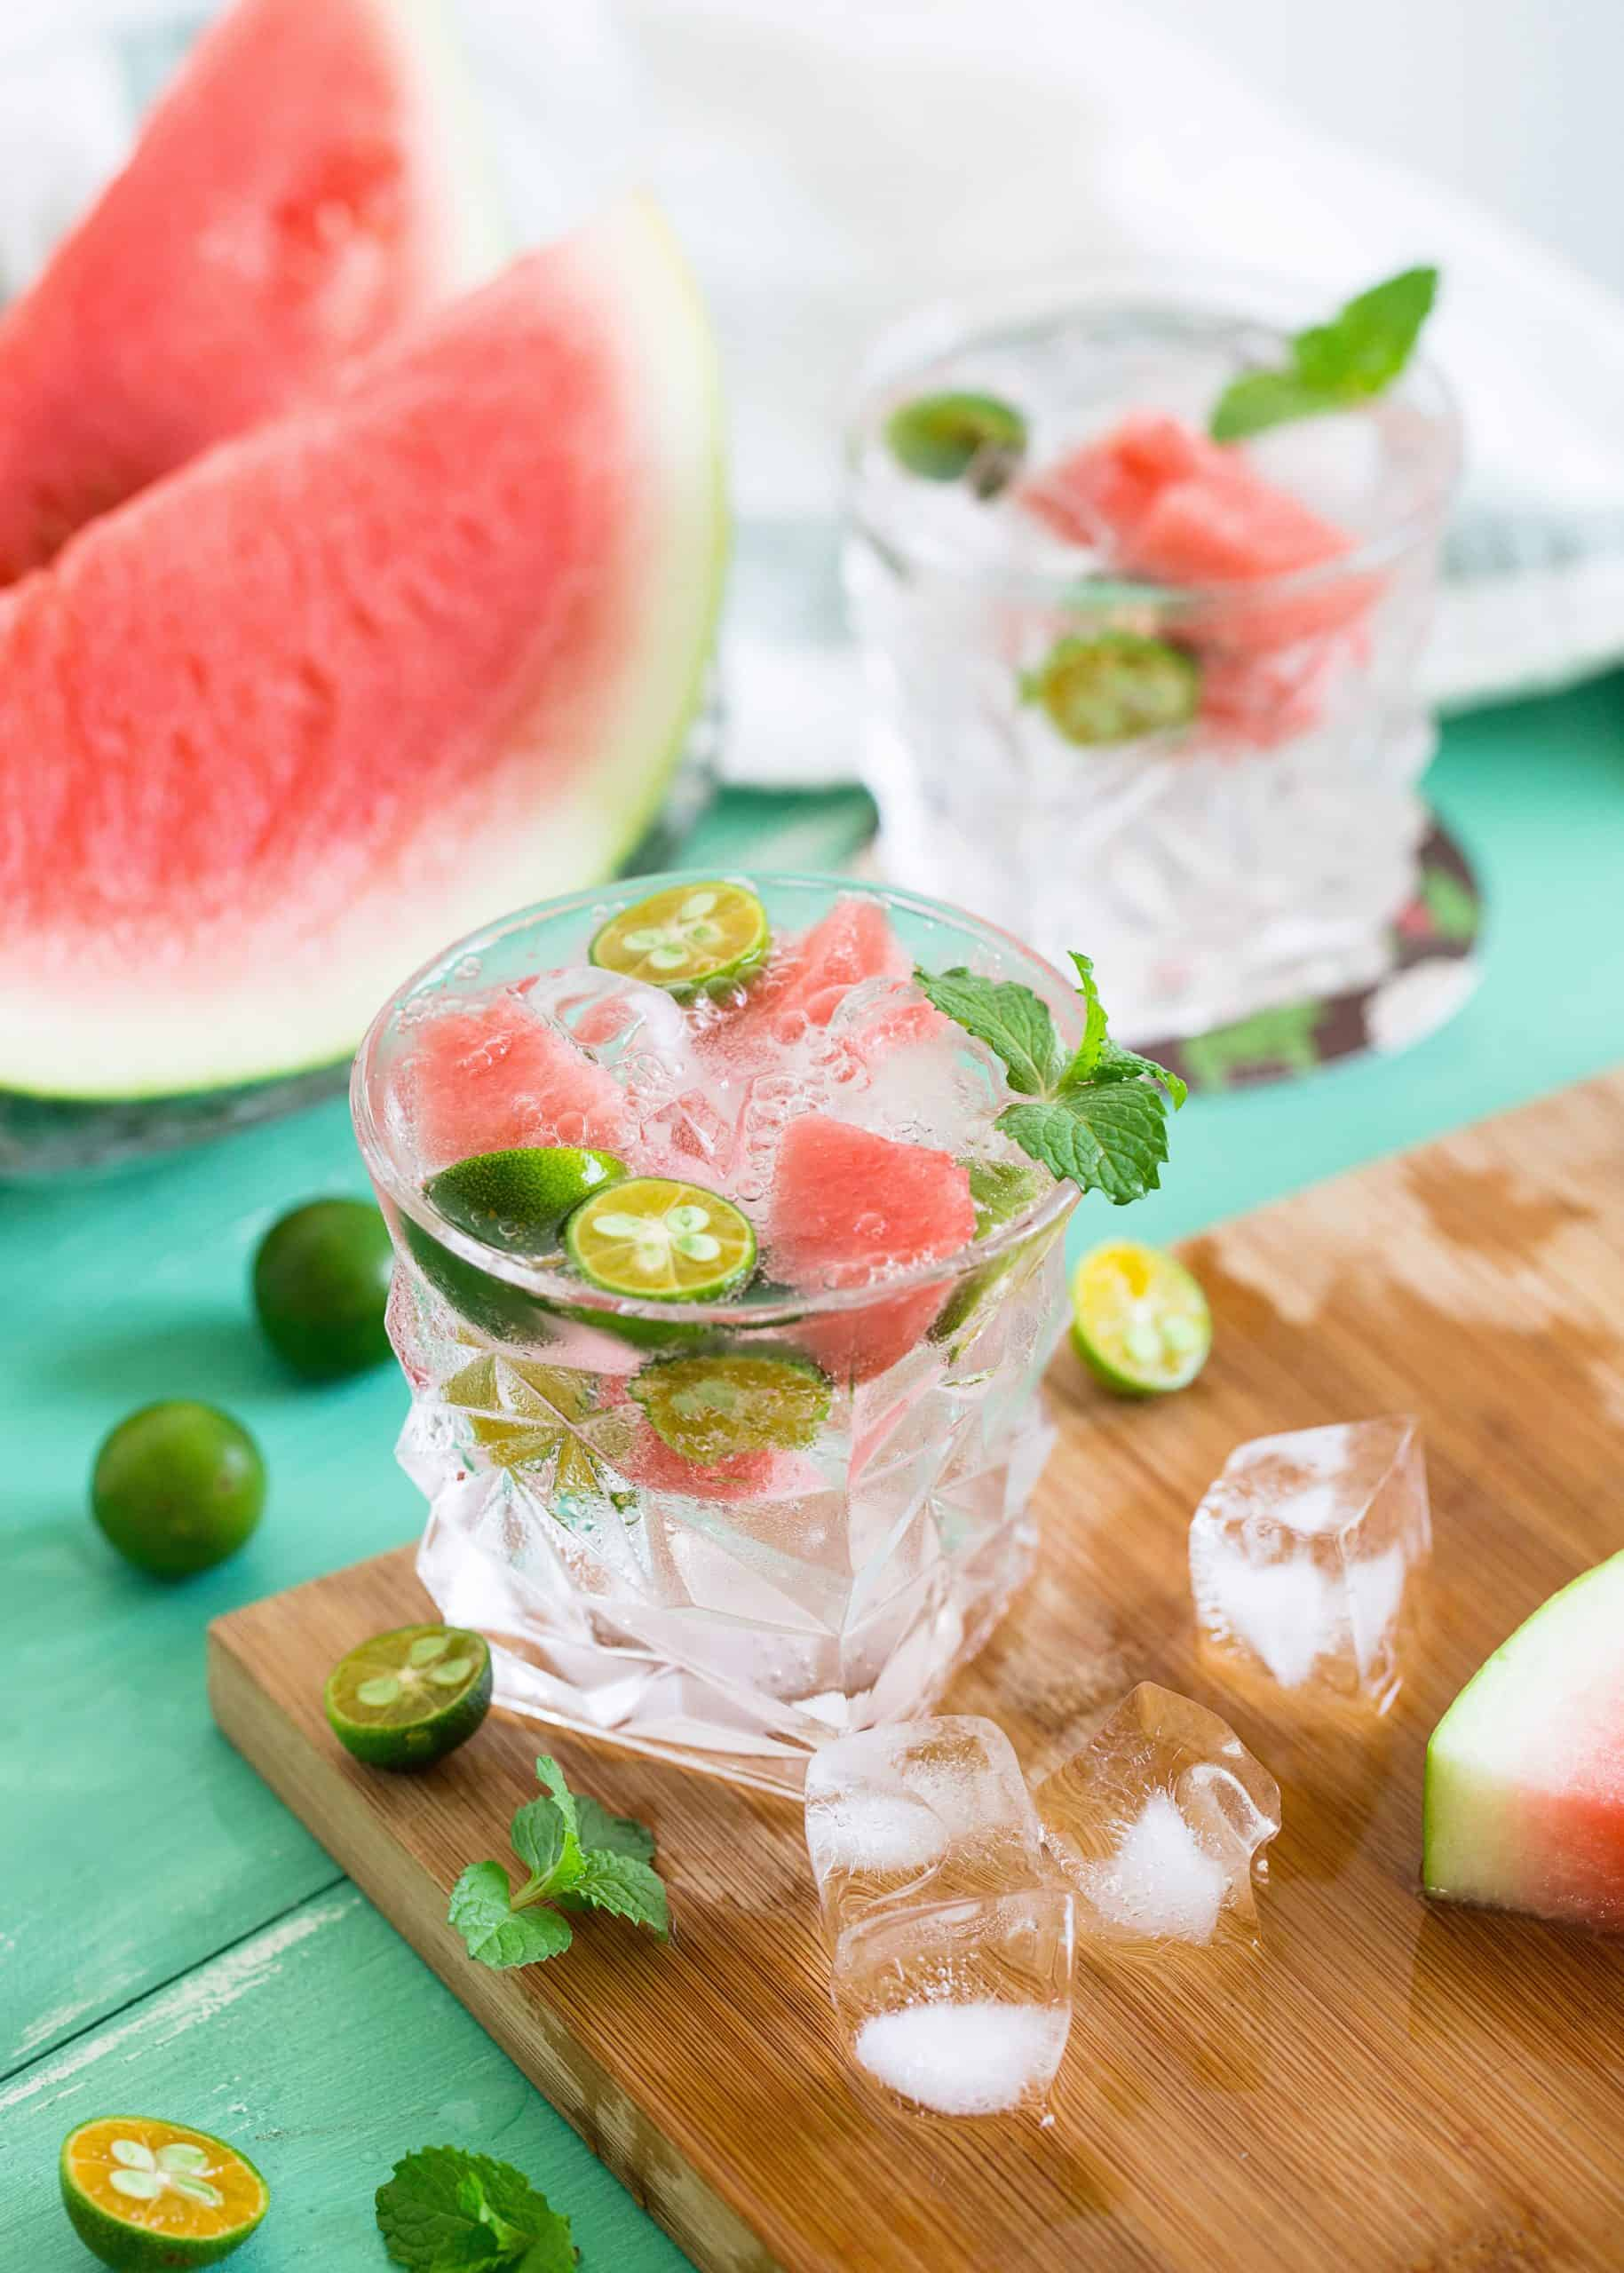 slices of watermelon, glass of water with ice and mint on a wooden board